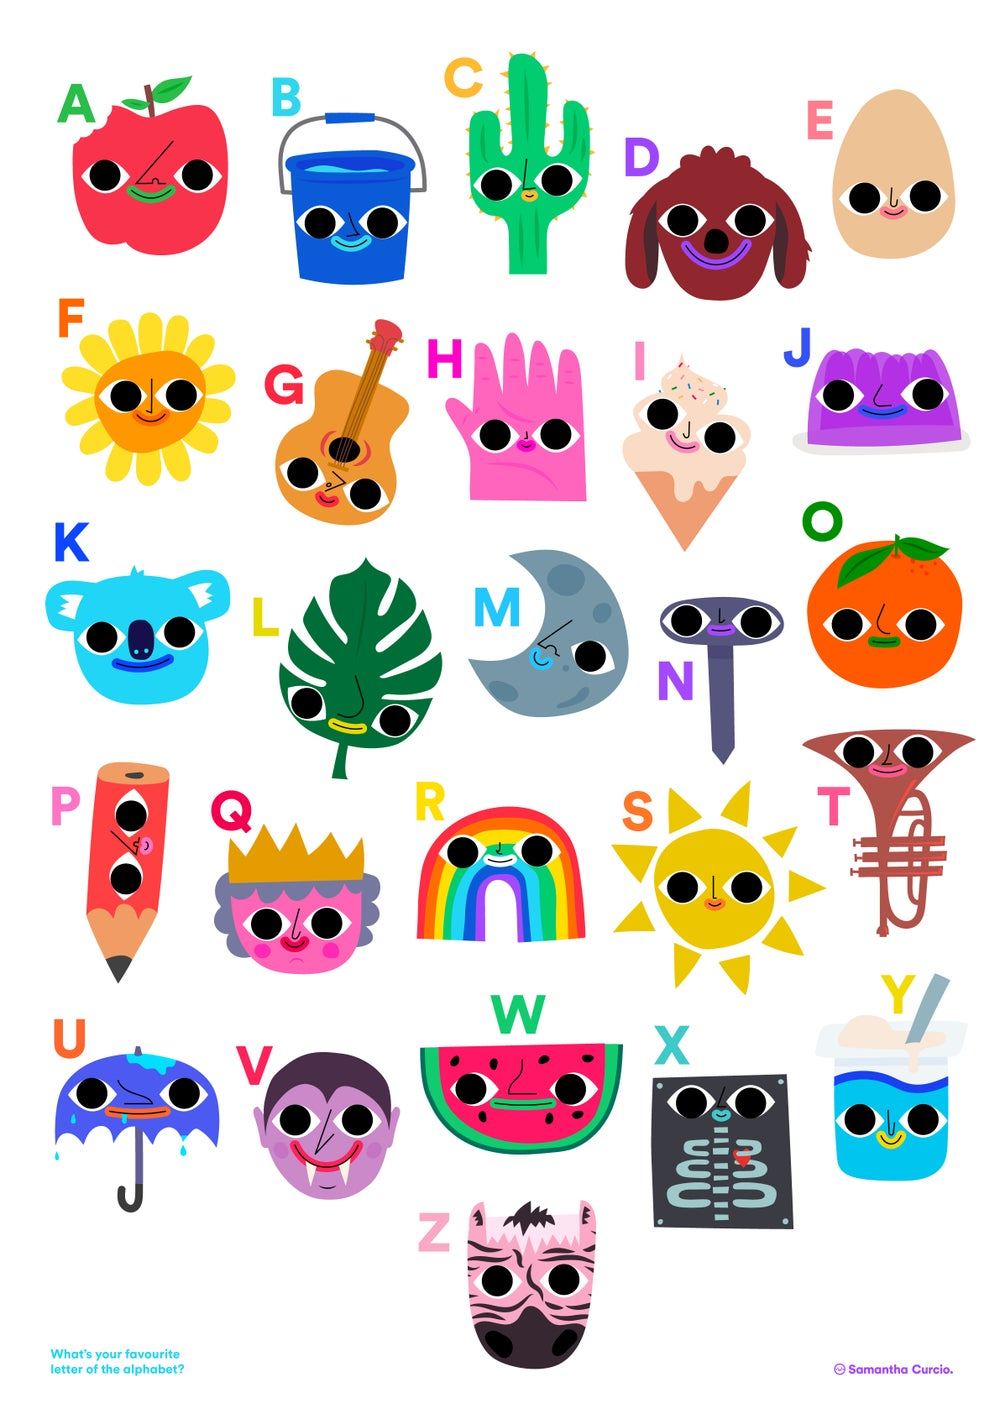 Image of A2 alphabet poster for kiddos